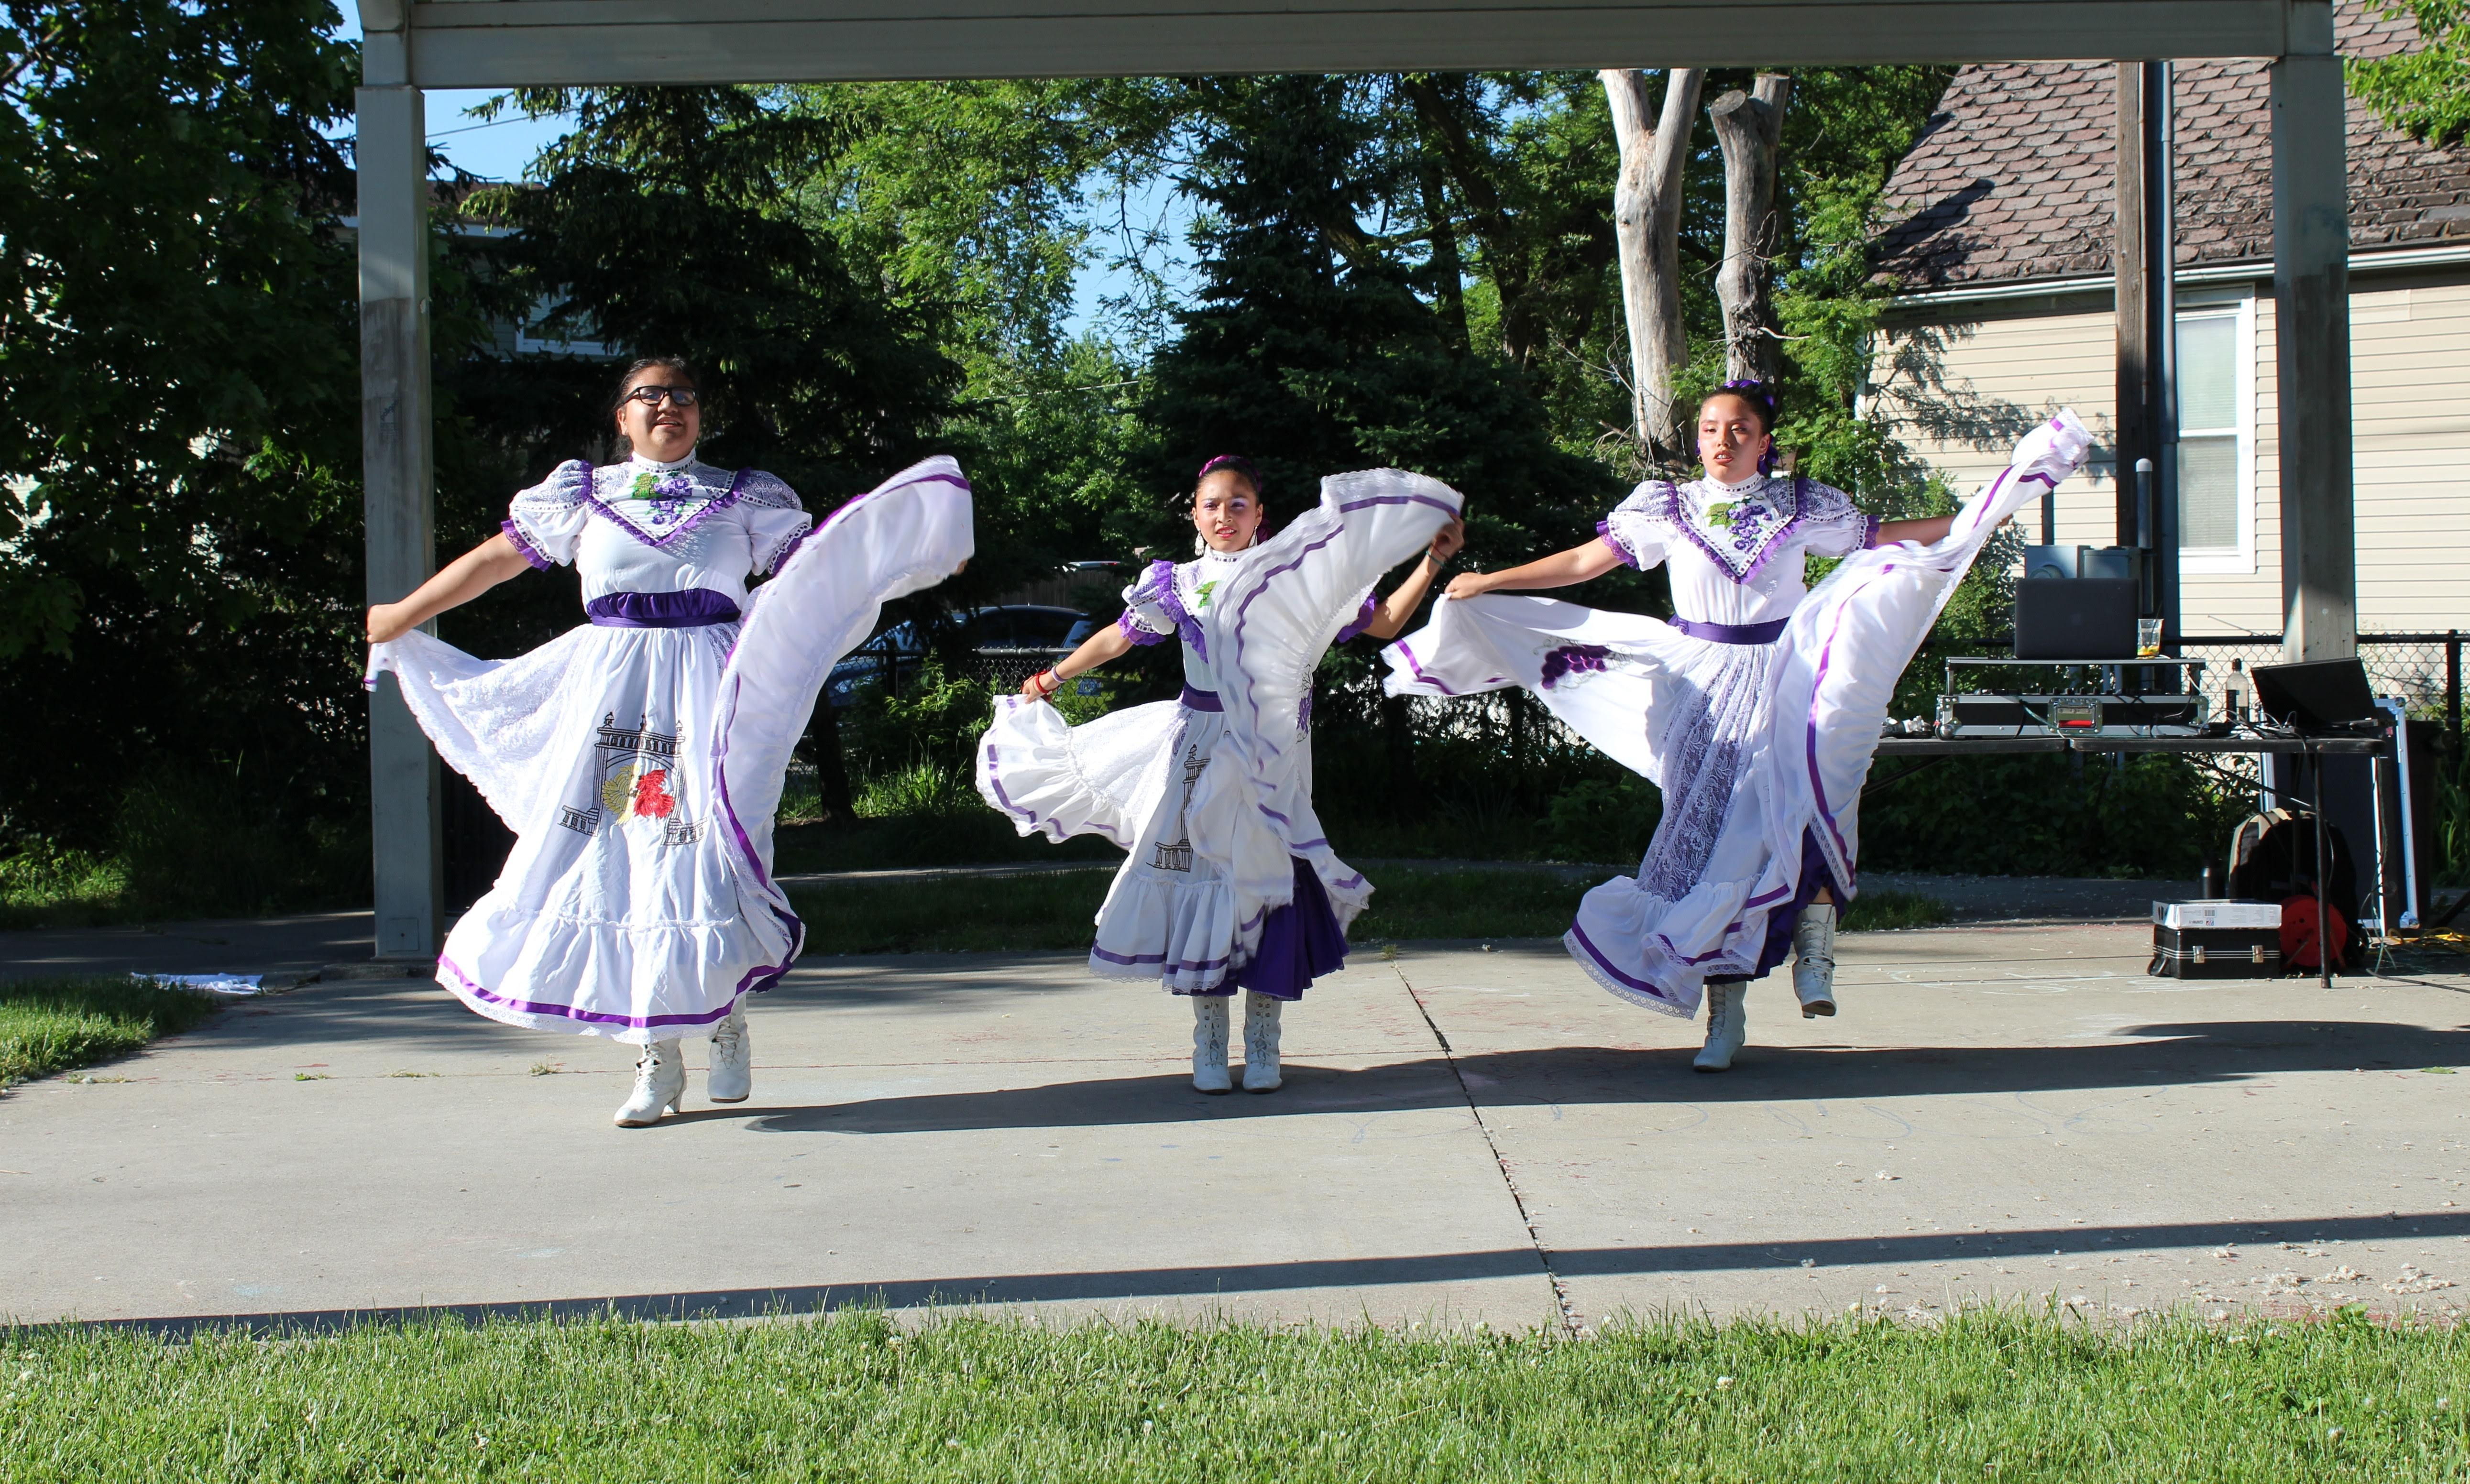 Traditional Mexican dancers from Ballet Folklórico de Detroit at UNI's Heroes of the Neighborhood event